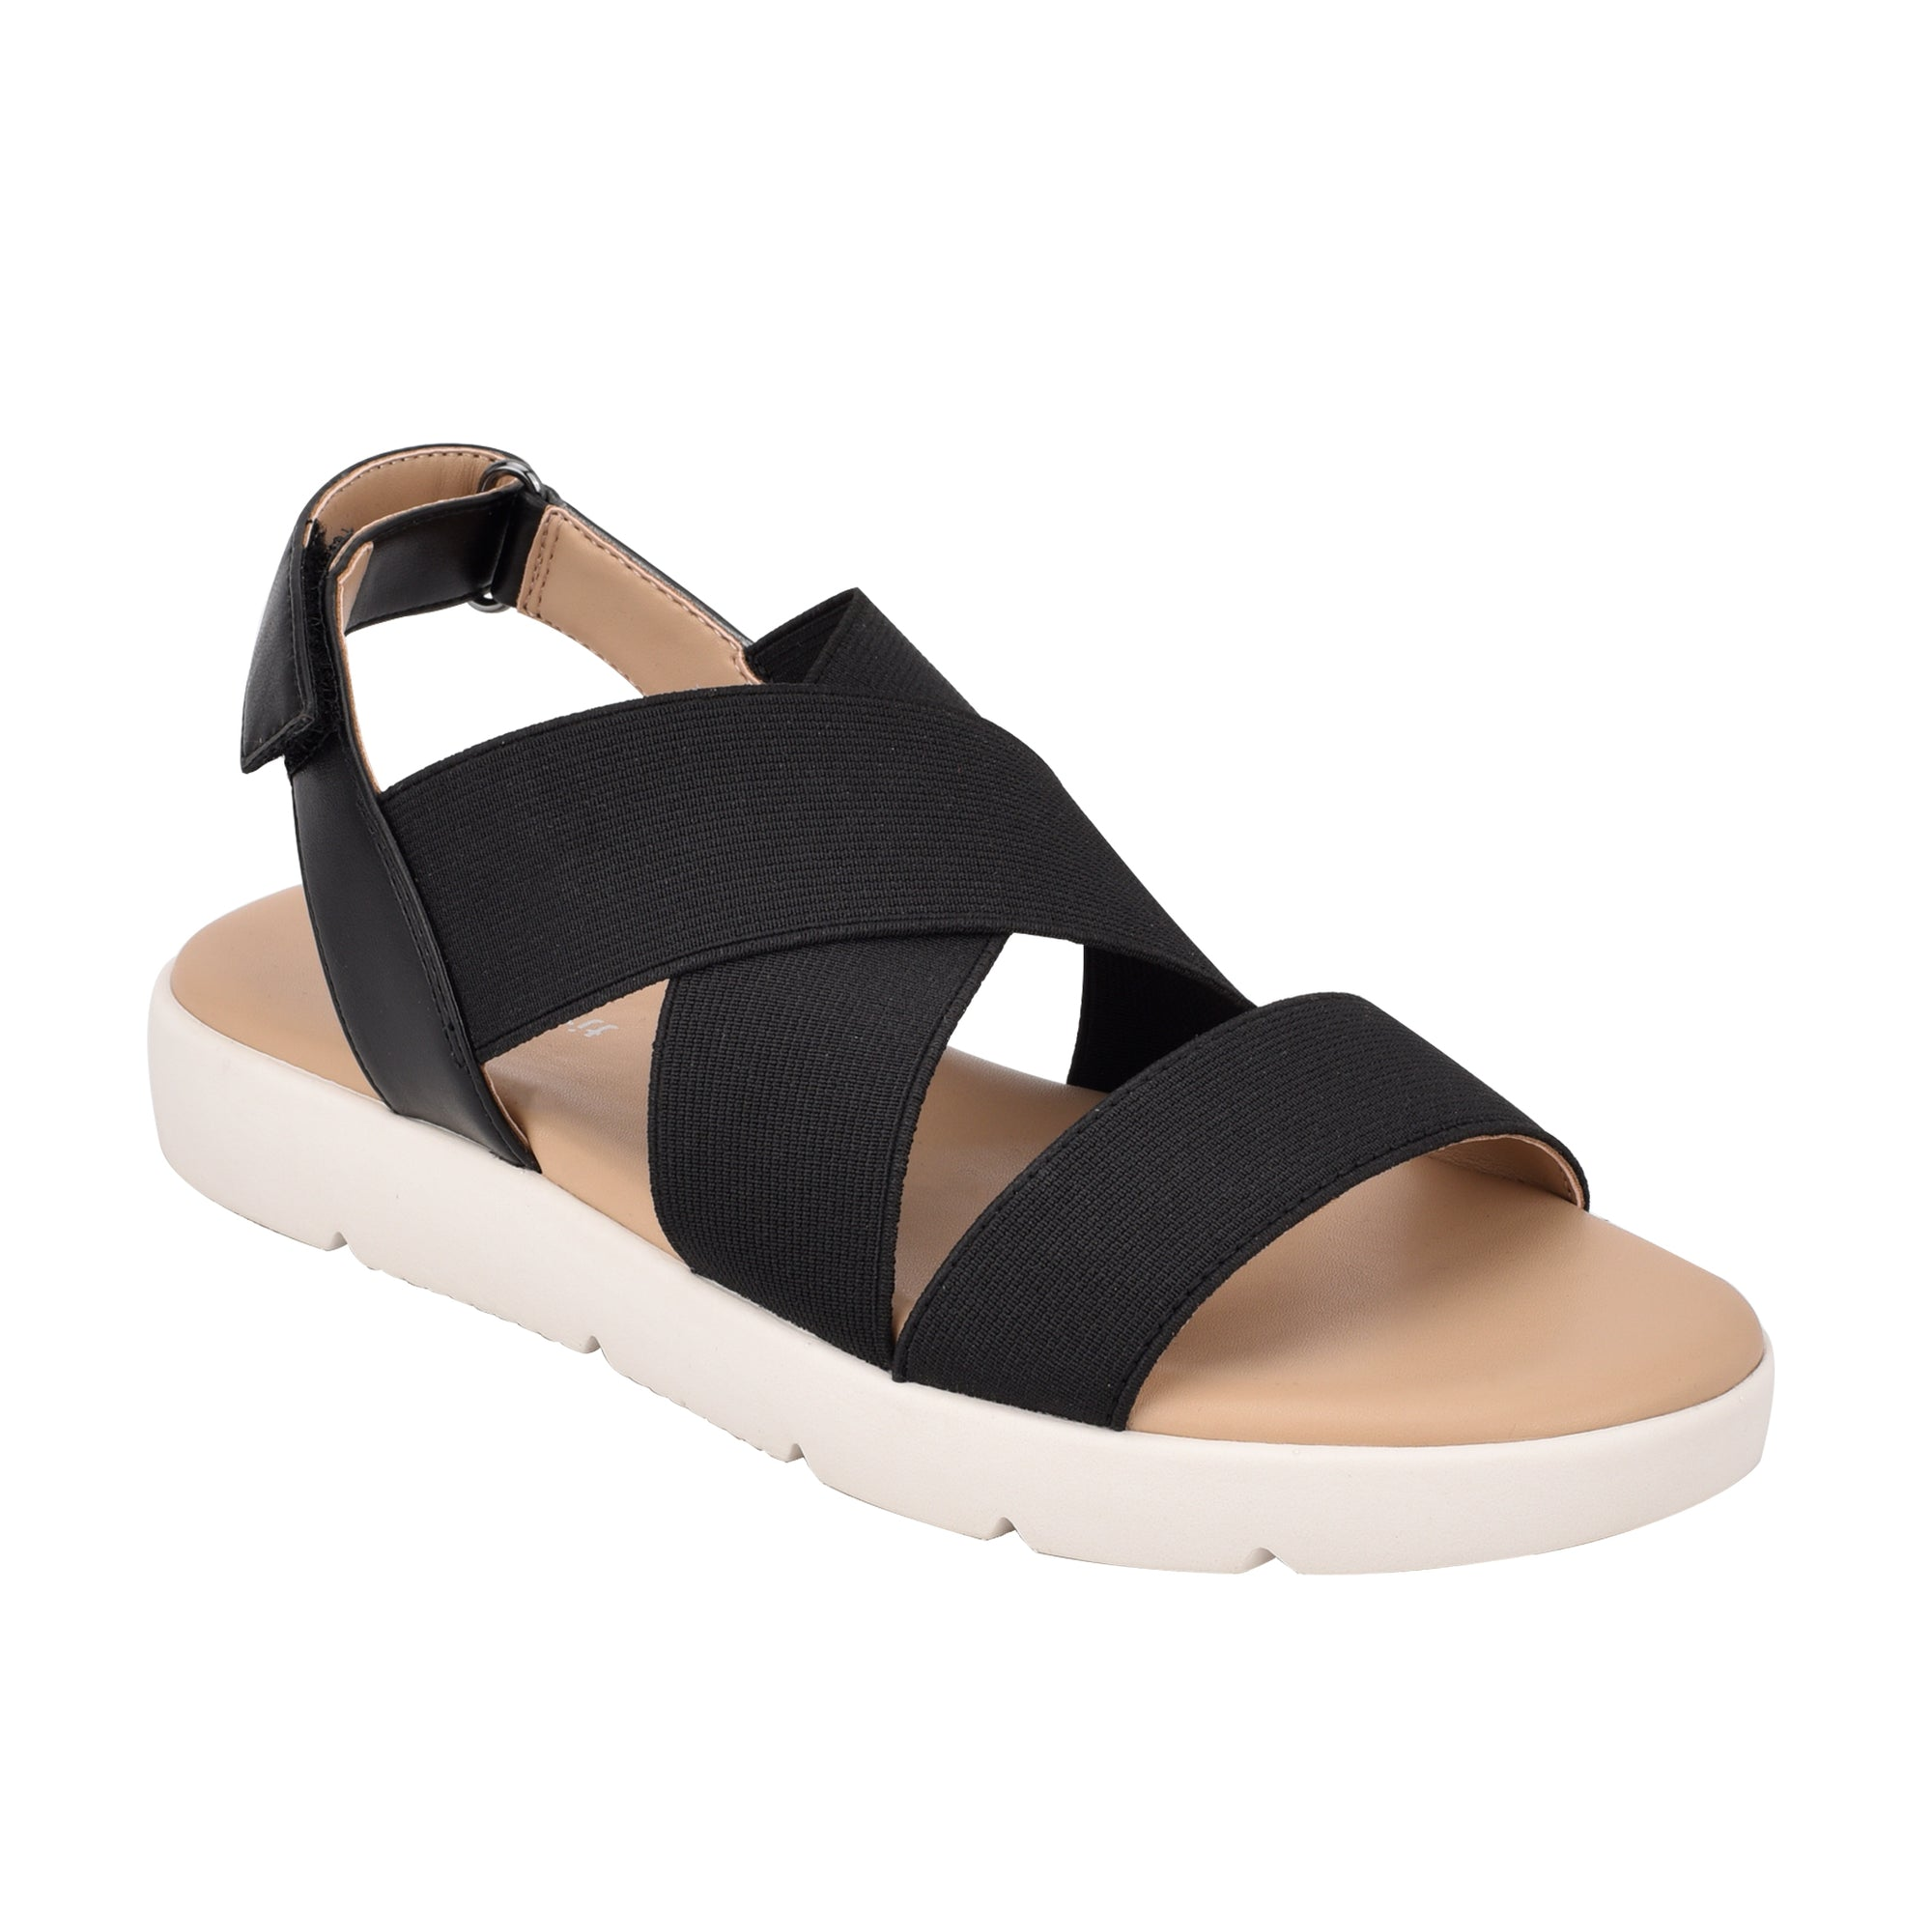 Damaris Flat Sandals